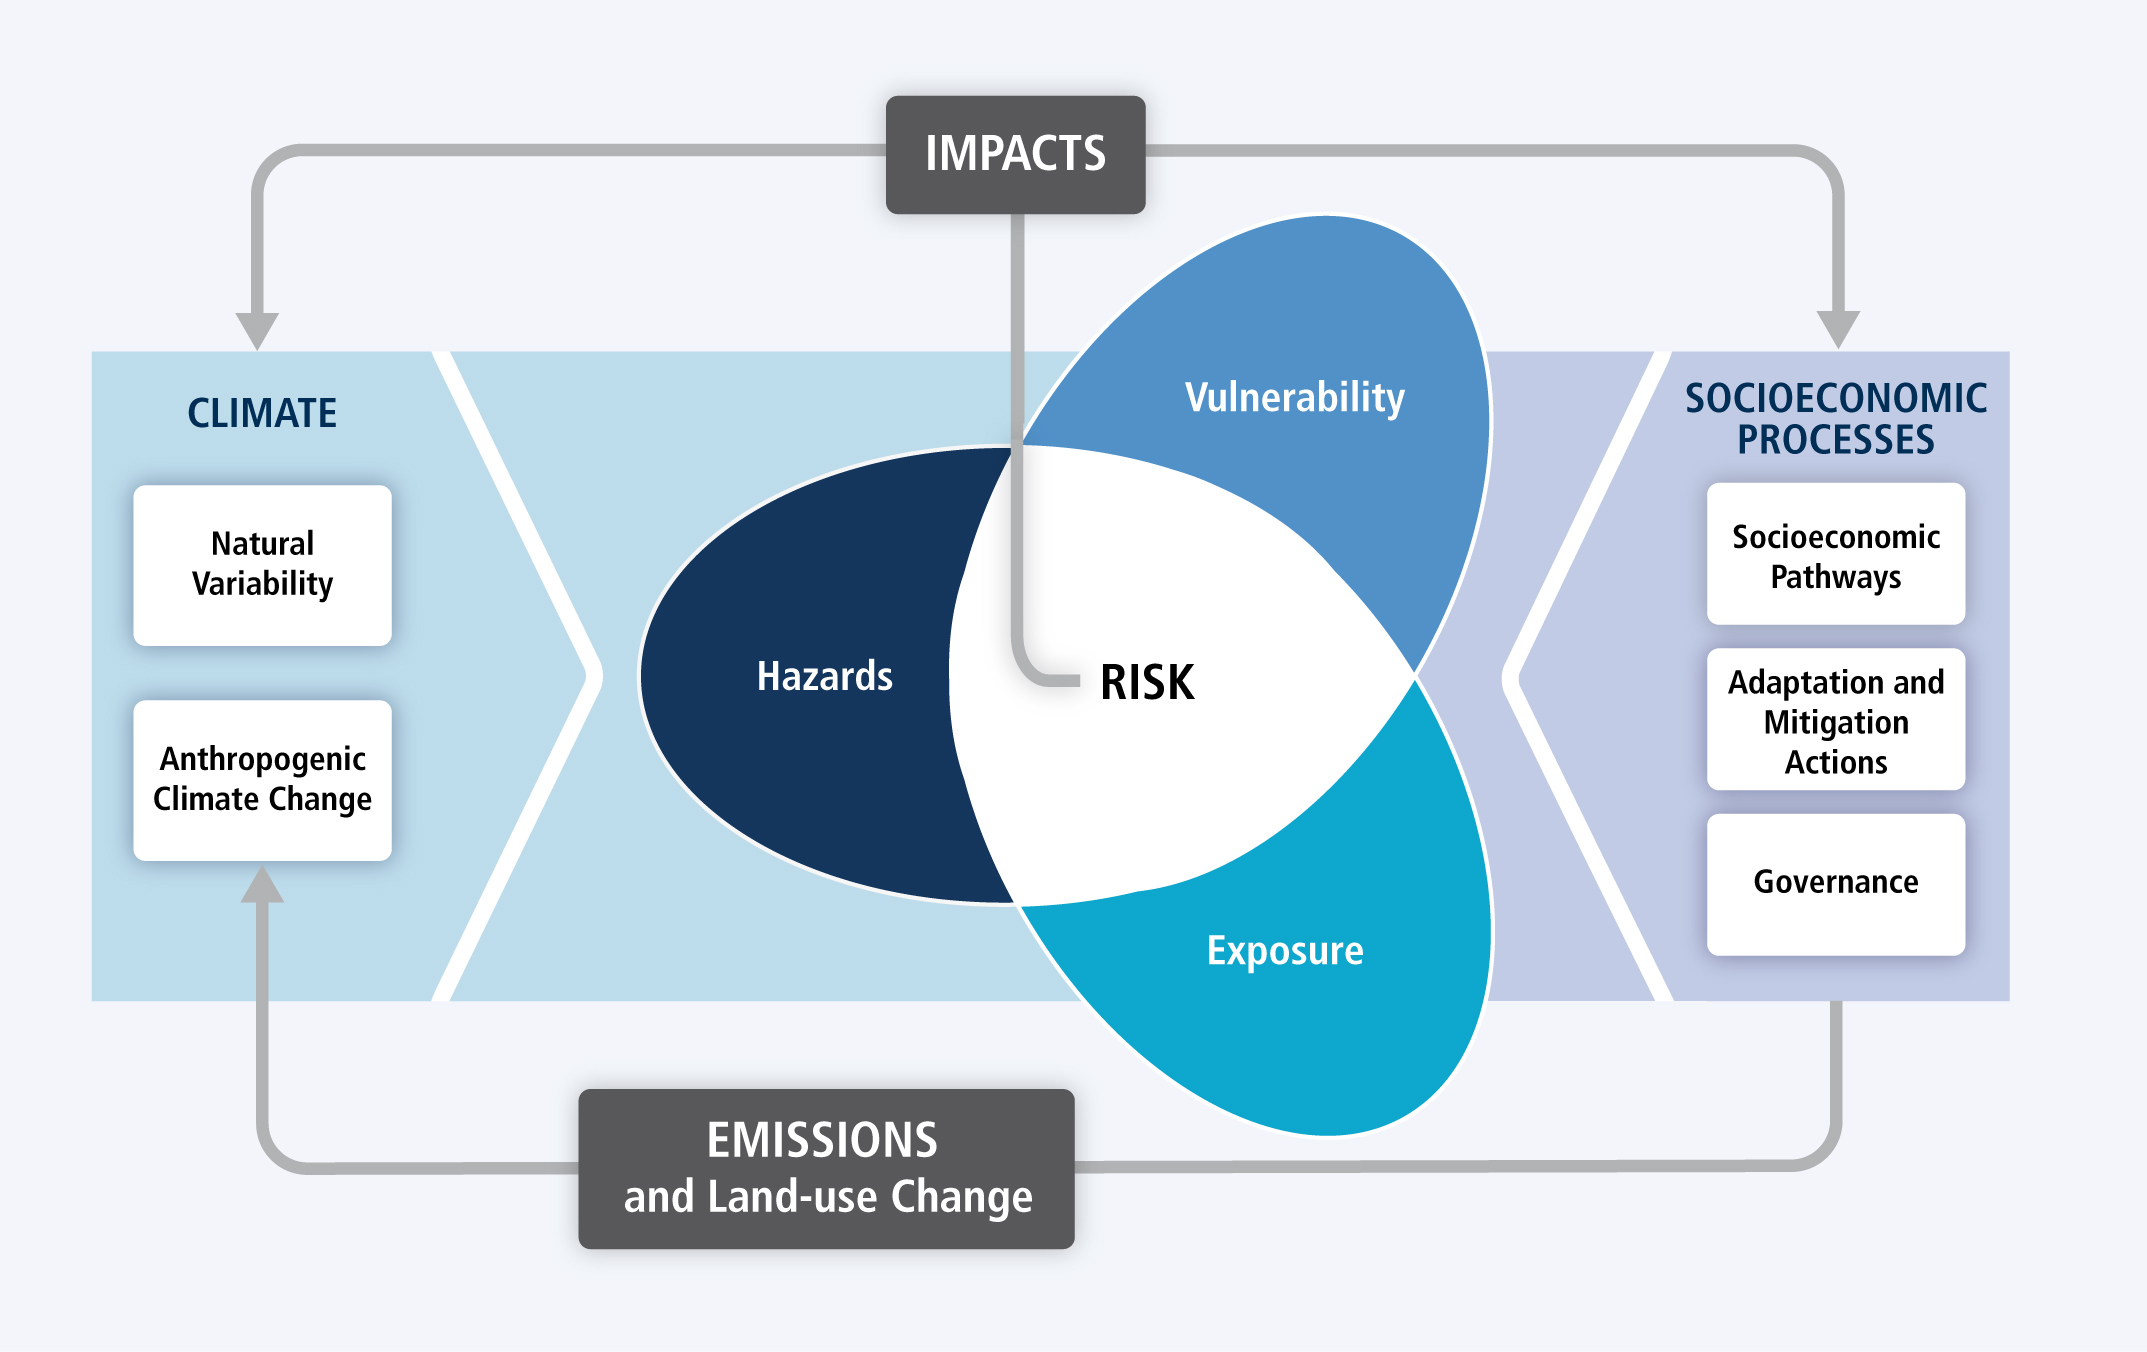 Figure 1: The IPCC AR5 conceptual framework of the risk of climate-related impacts. This figure's original source is: https://www.ipcc.ch/report/ar5/wg2/summary-for-policymakers/.